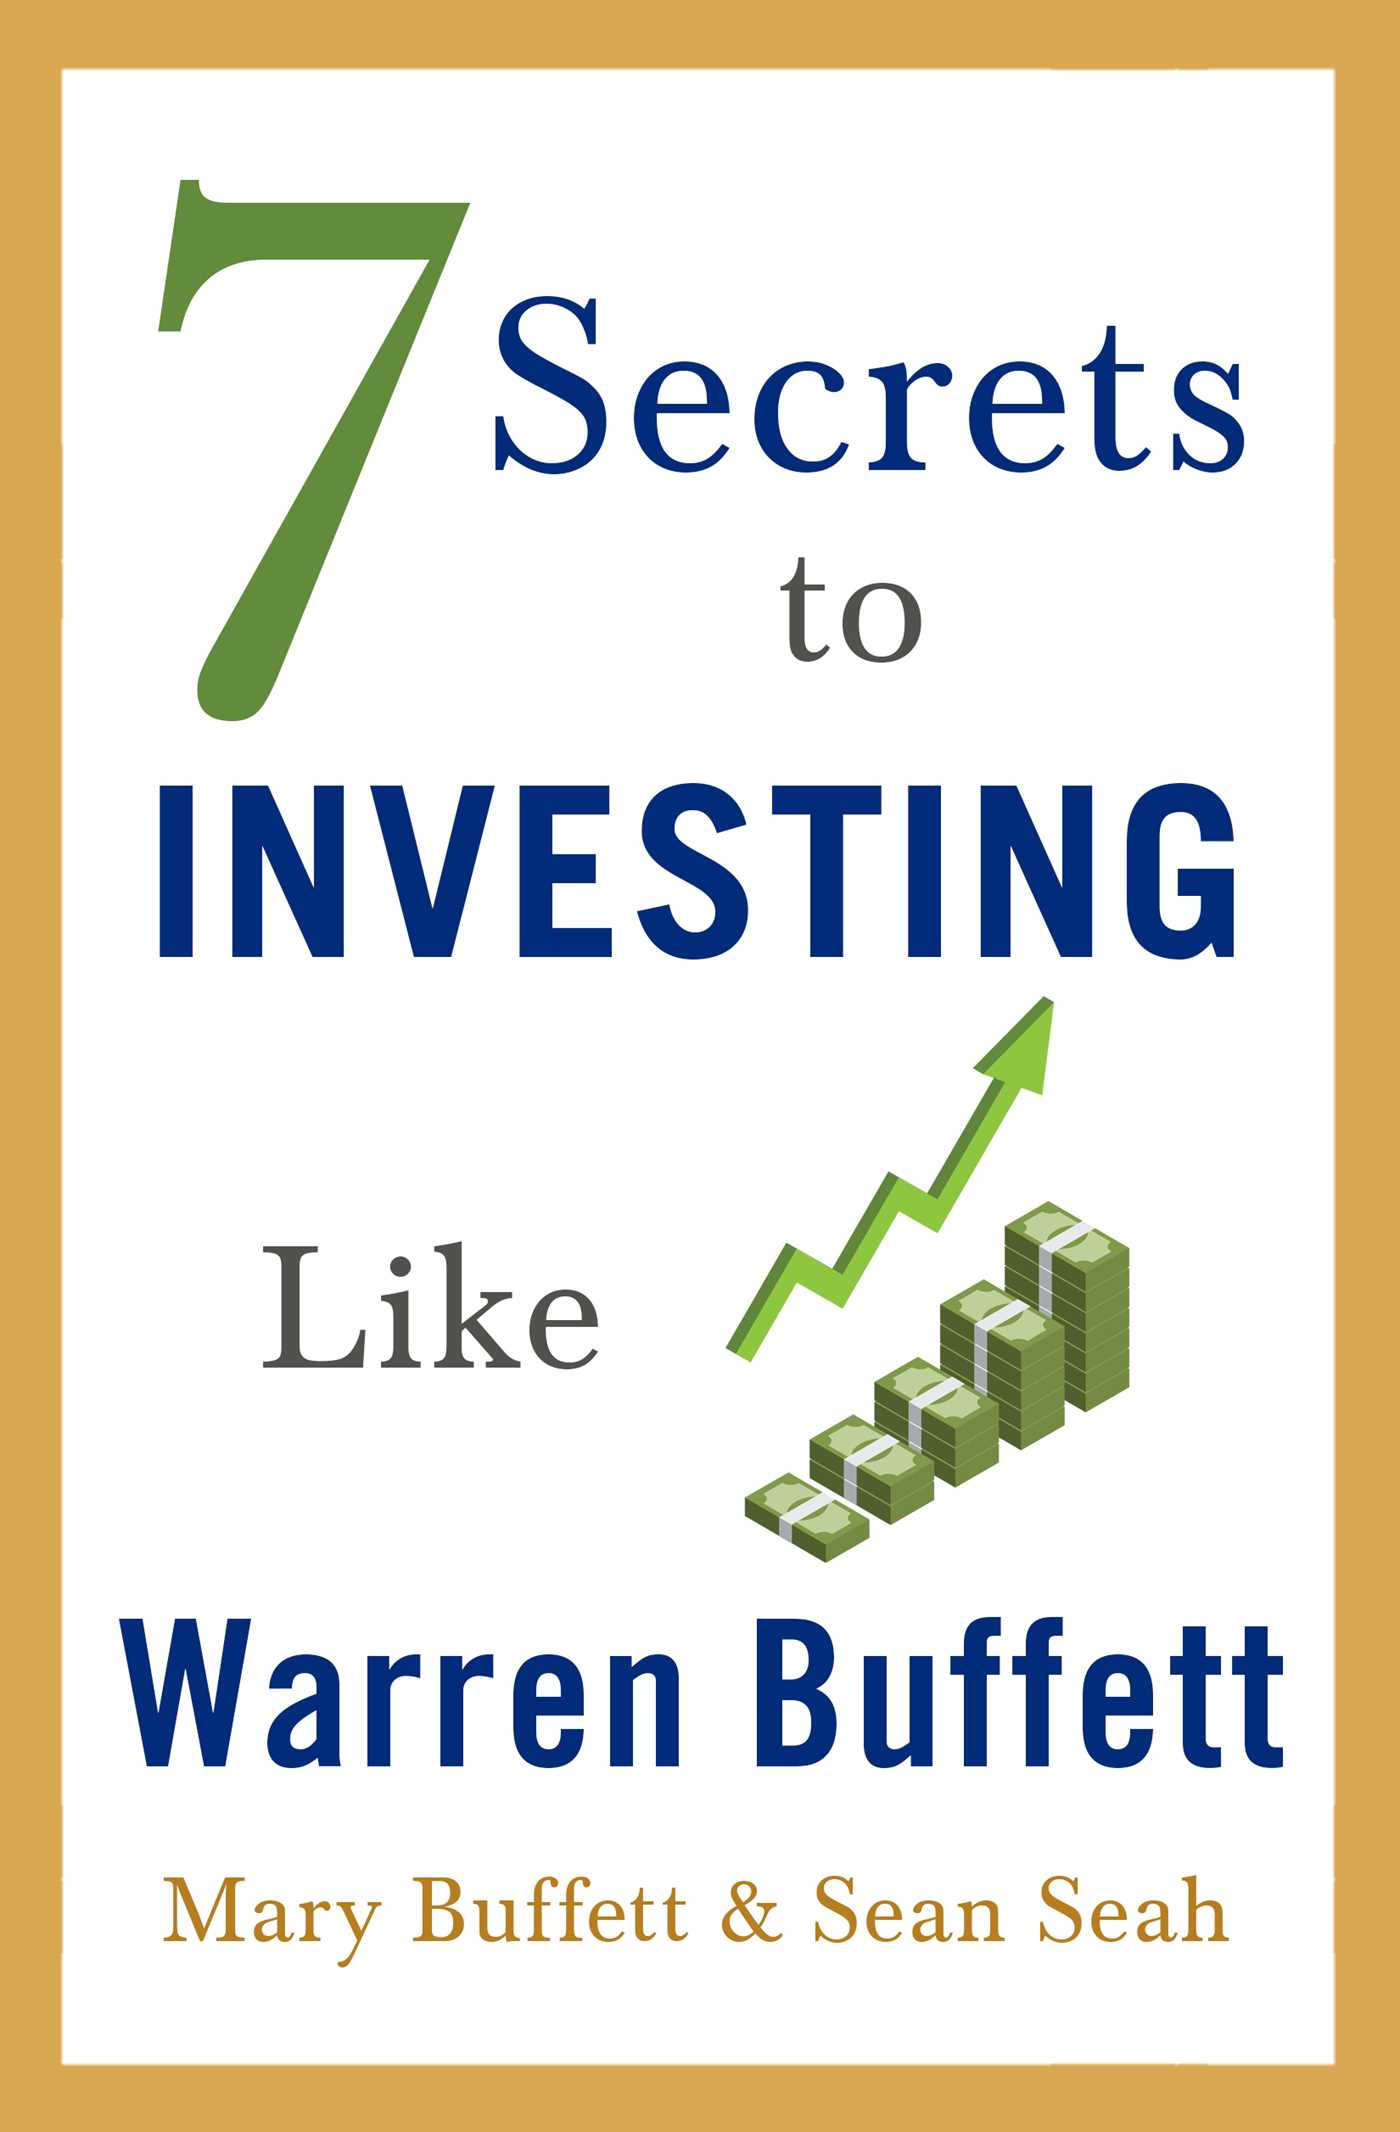 Warren Buffett Investing Secrets